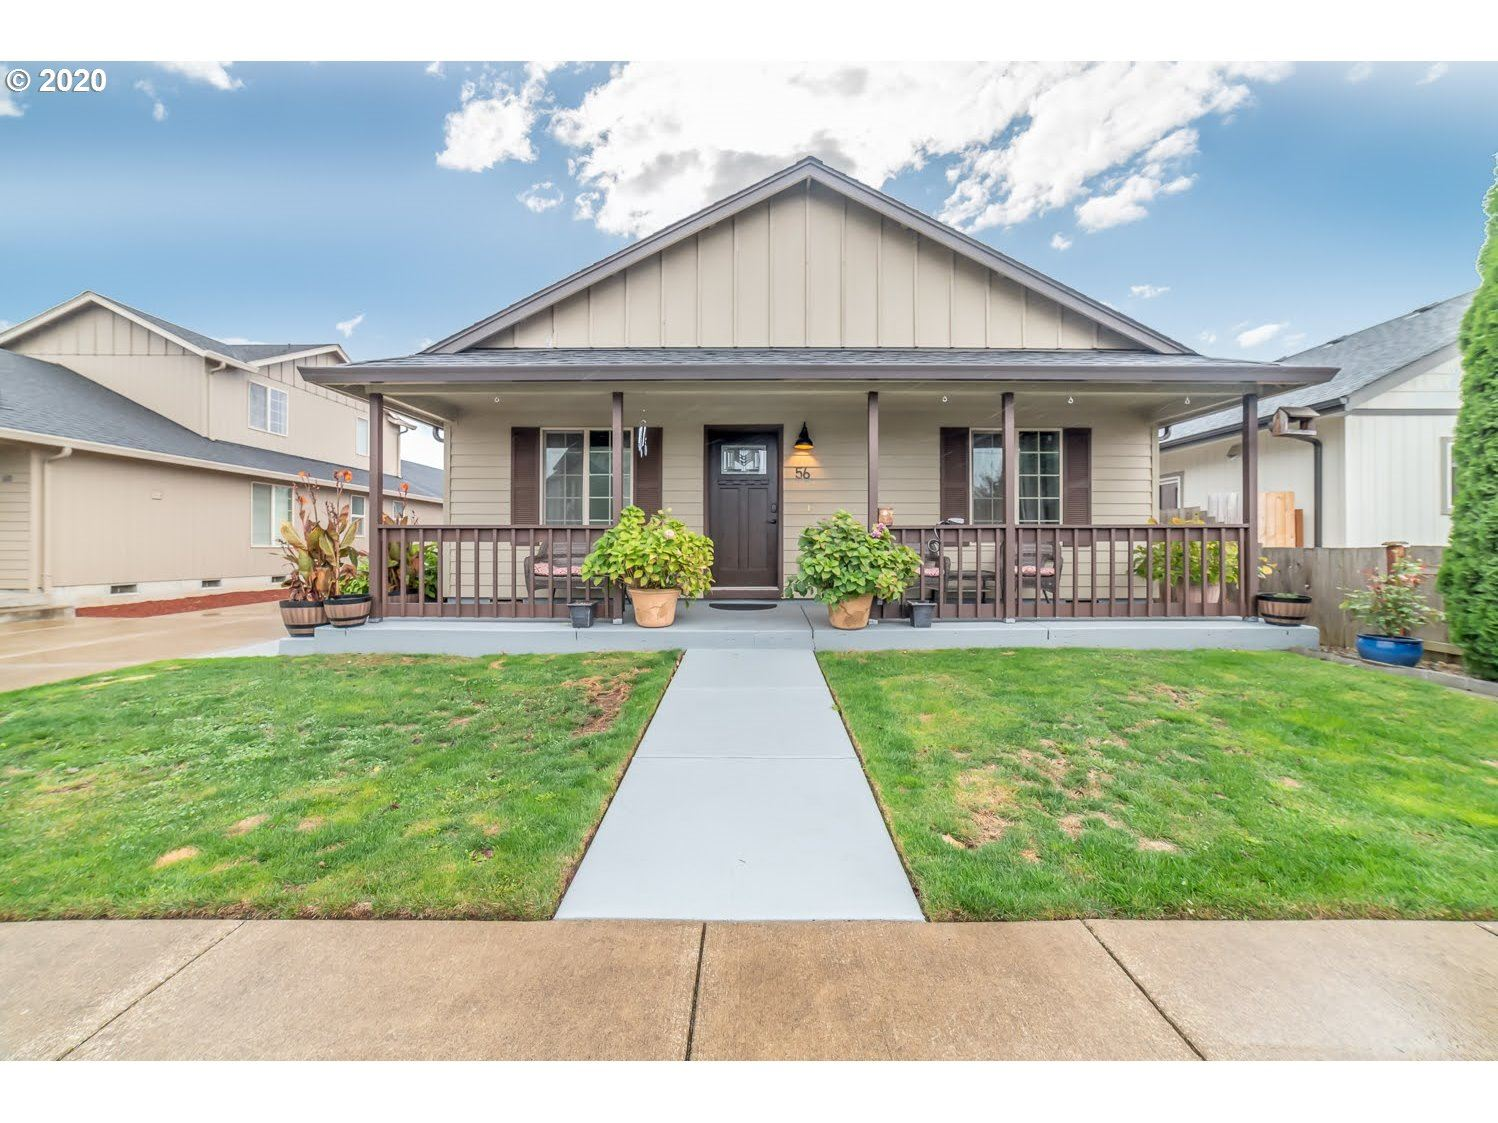 Photo for 56 ALMOND WAY, Creswell, OR 97426 (MLS # 20027708)